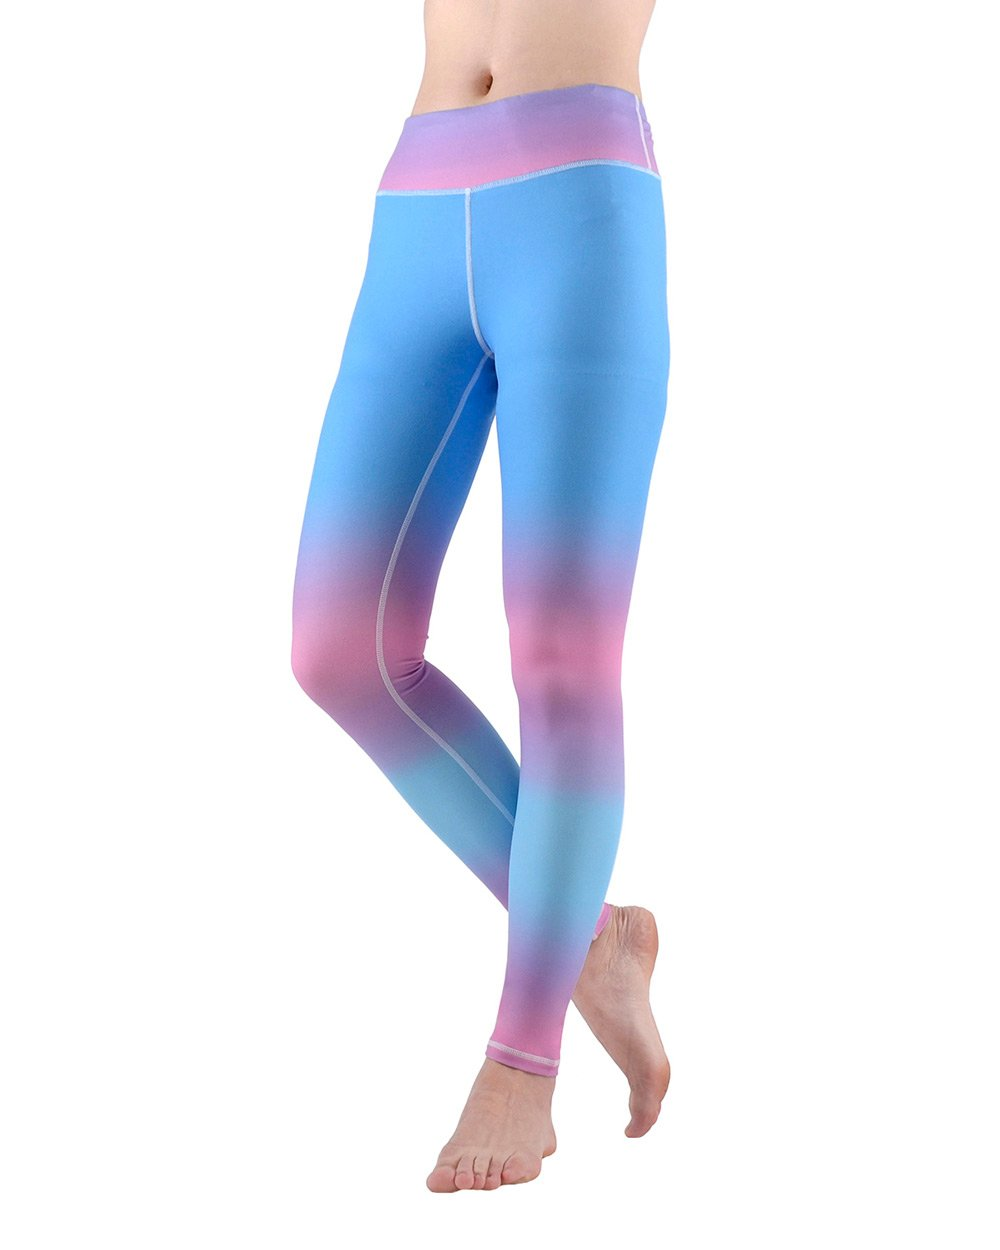 SOUTEAM Womens High Waist Athletic Leggings Workout Sports Yoga Running Pants Capri with Pocket